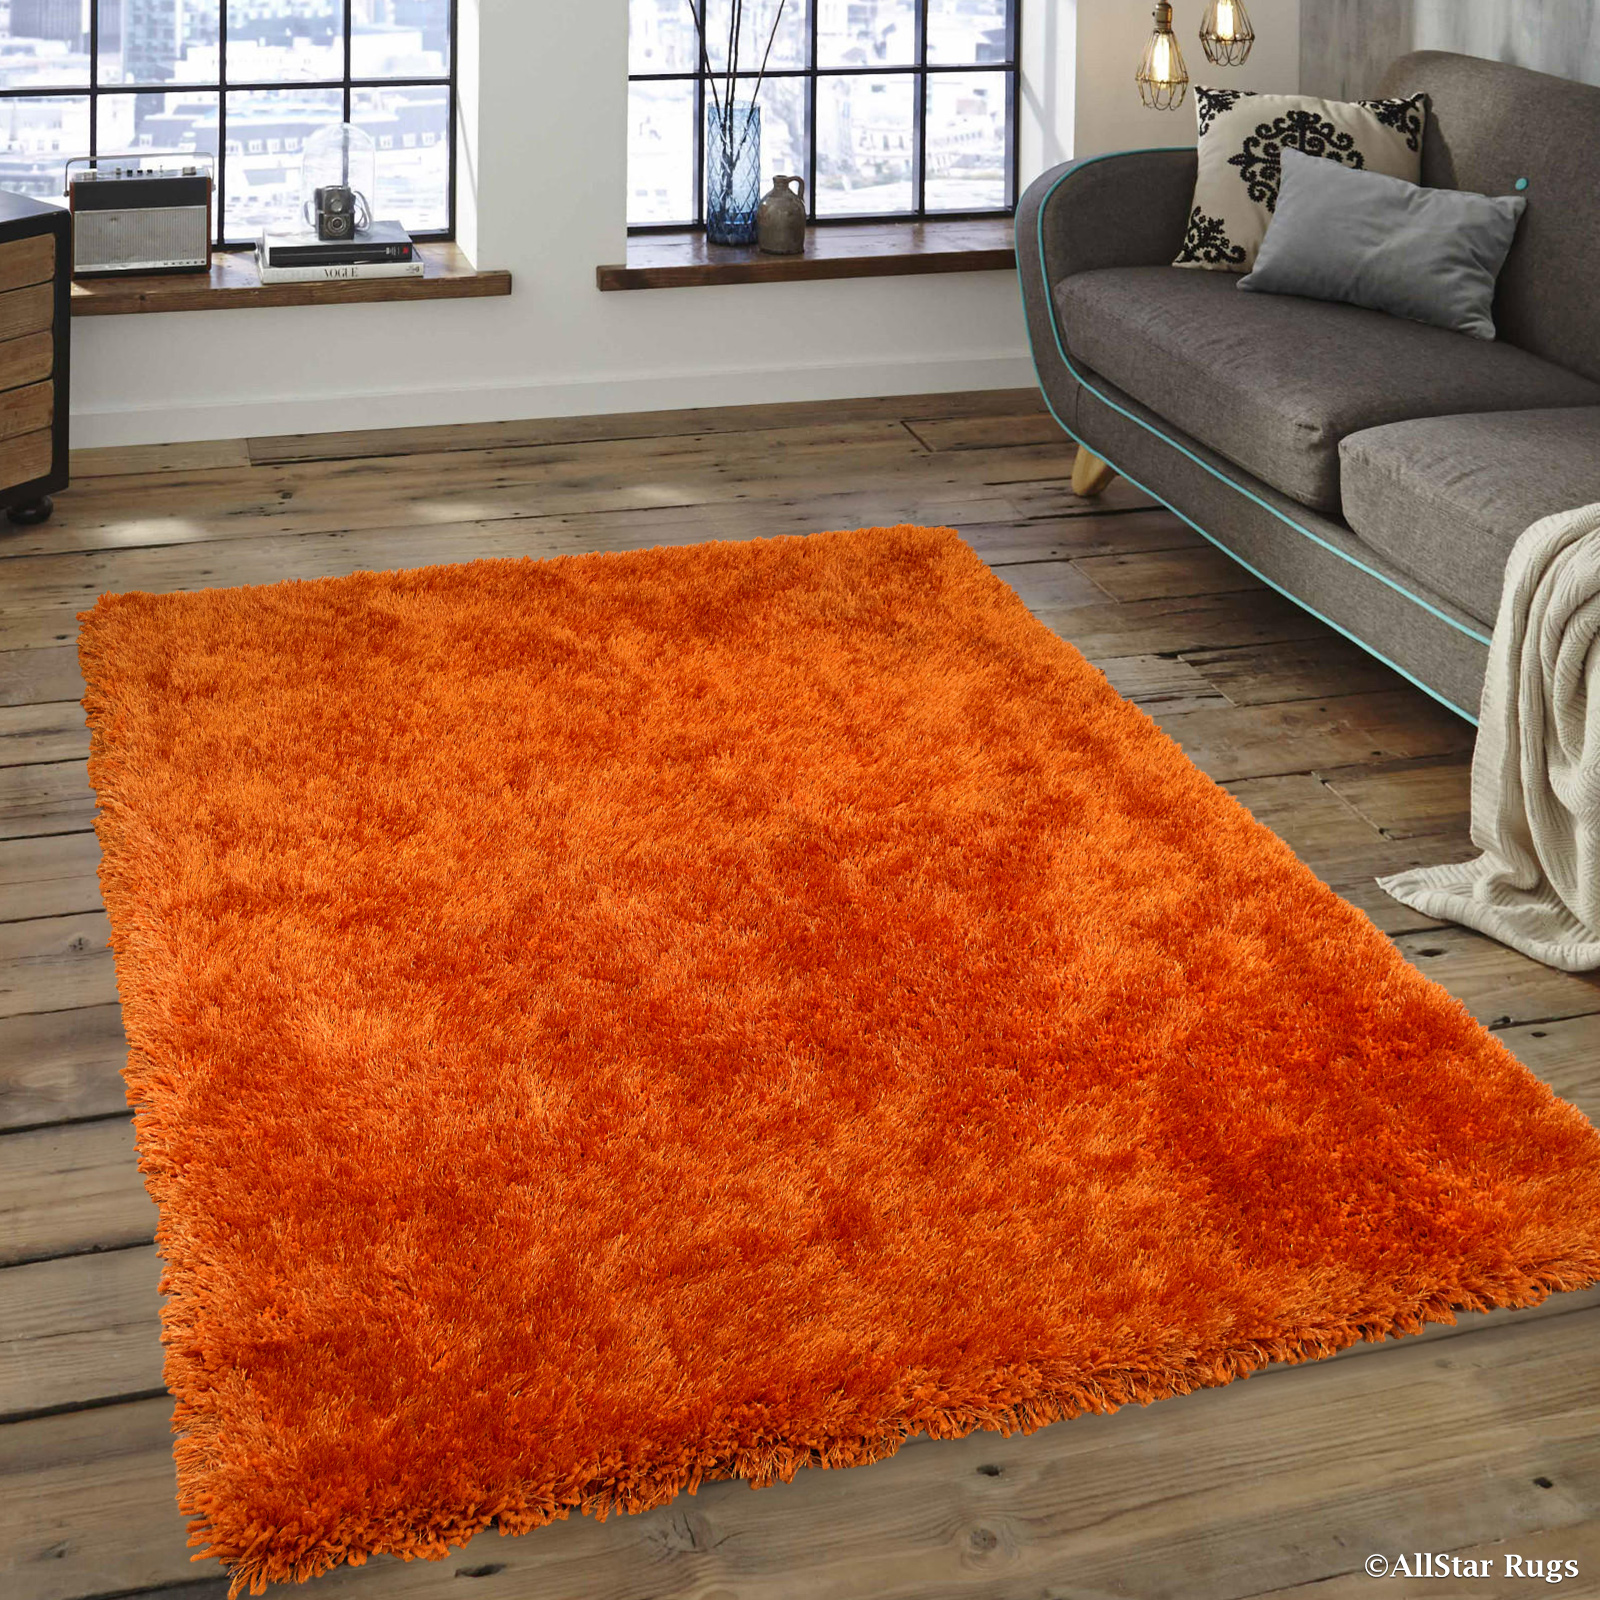 "Allstar Tangerine High Density and High Quality High End Shaggy Area Rug. Very Soft Extra comfort (3' 8"" x 5' 1"")"